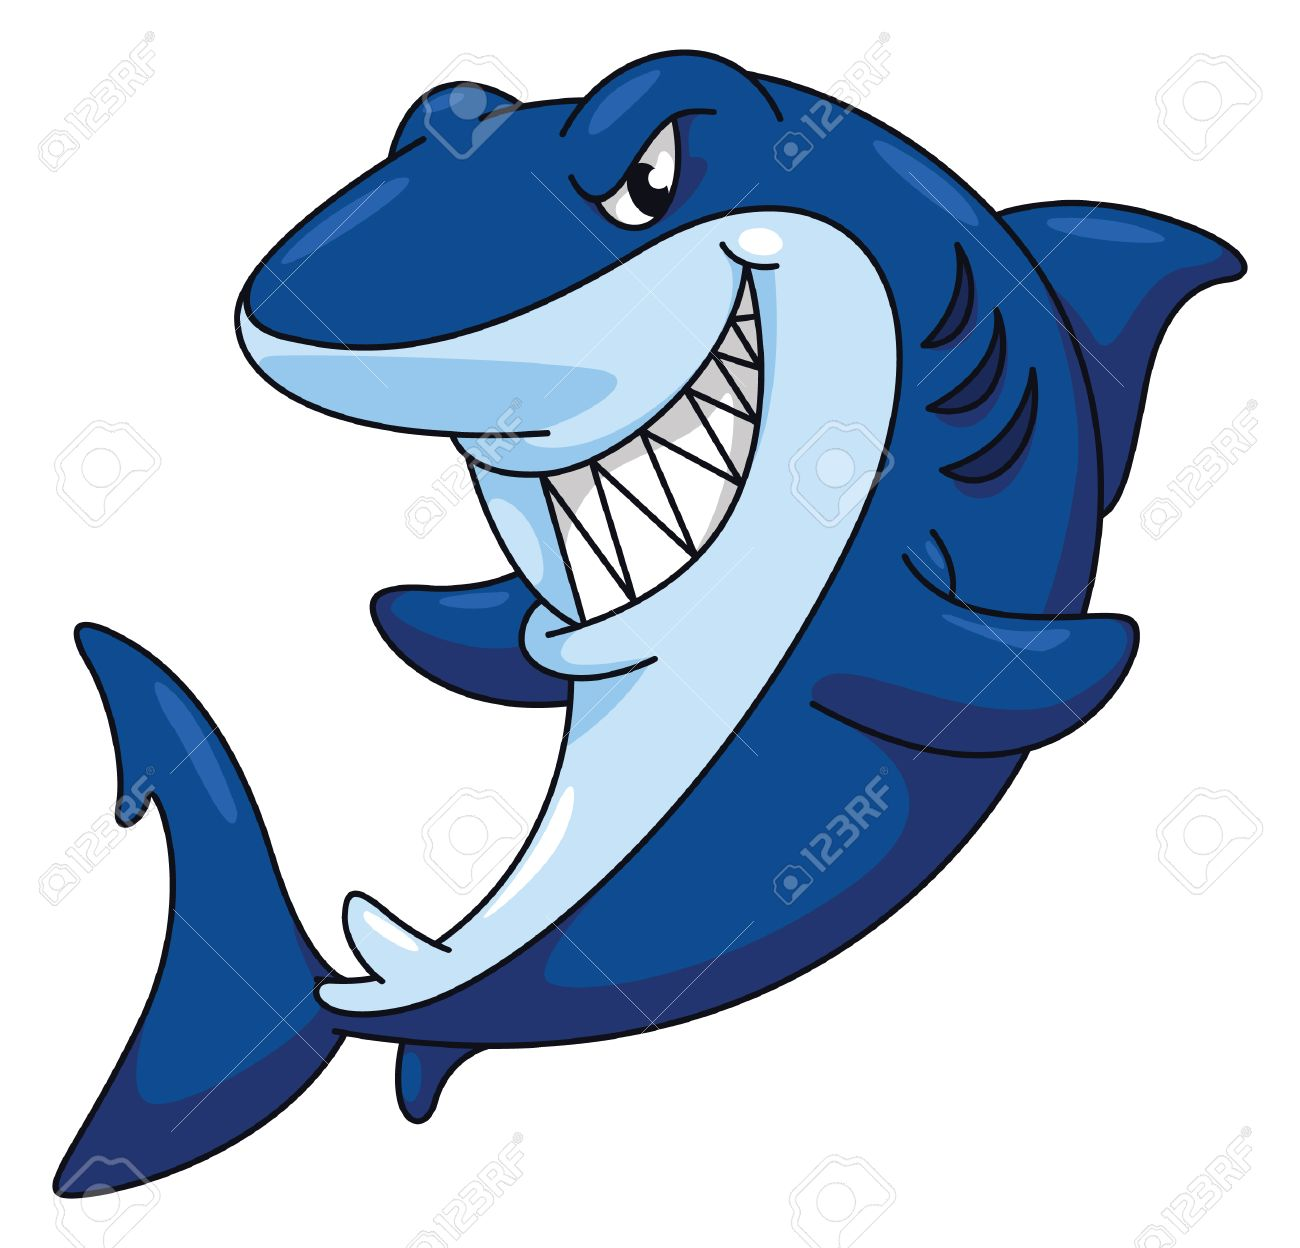 shark images cartoon  Shark Funny Cartoon Royalty Free Cliparts, Vectors, And Stock ...